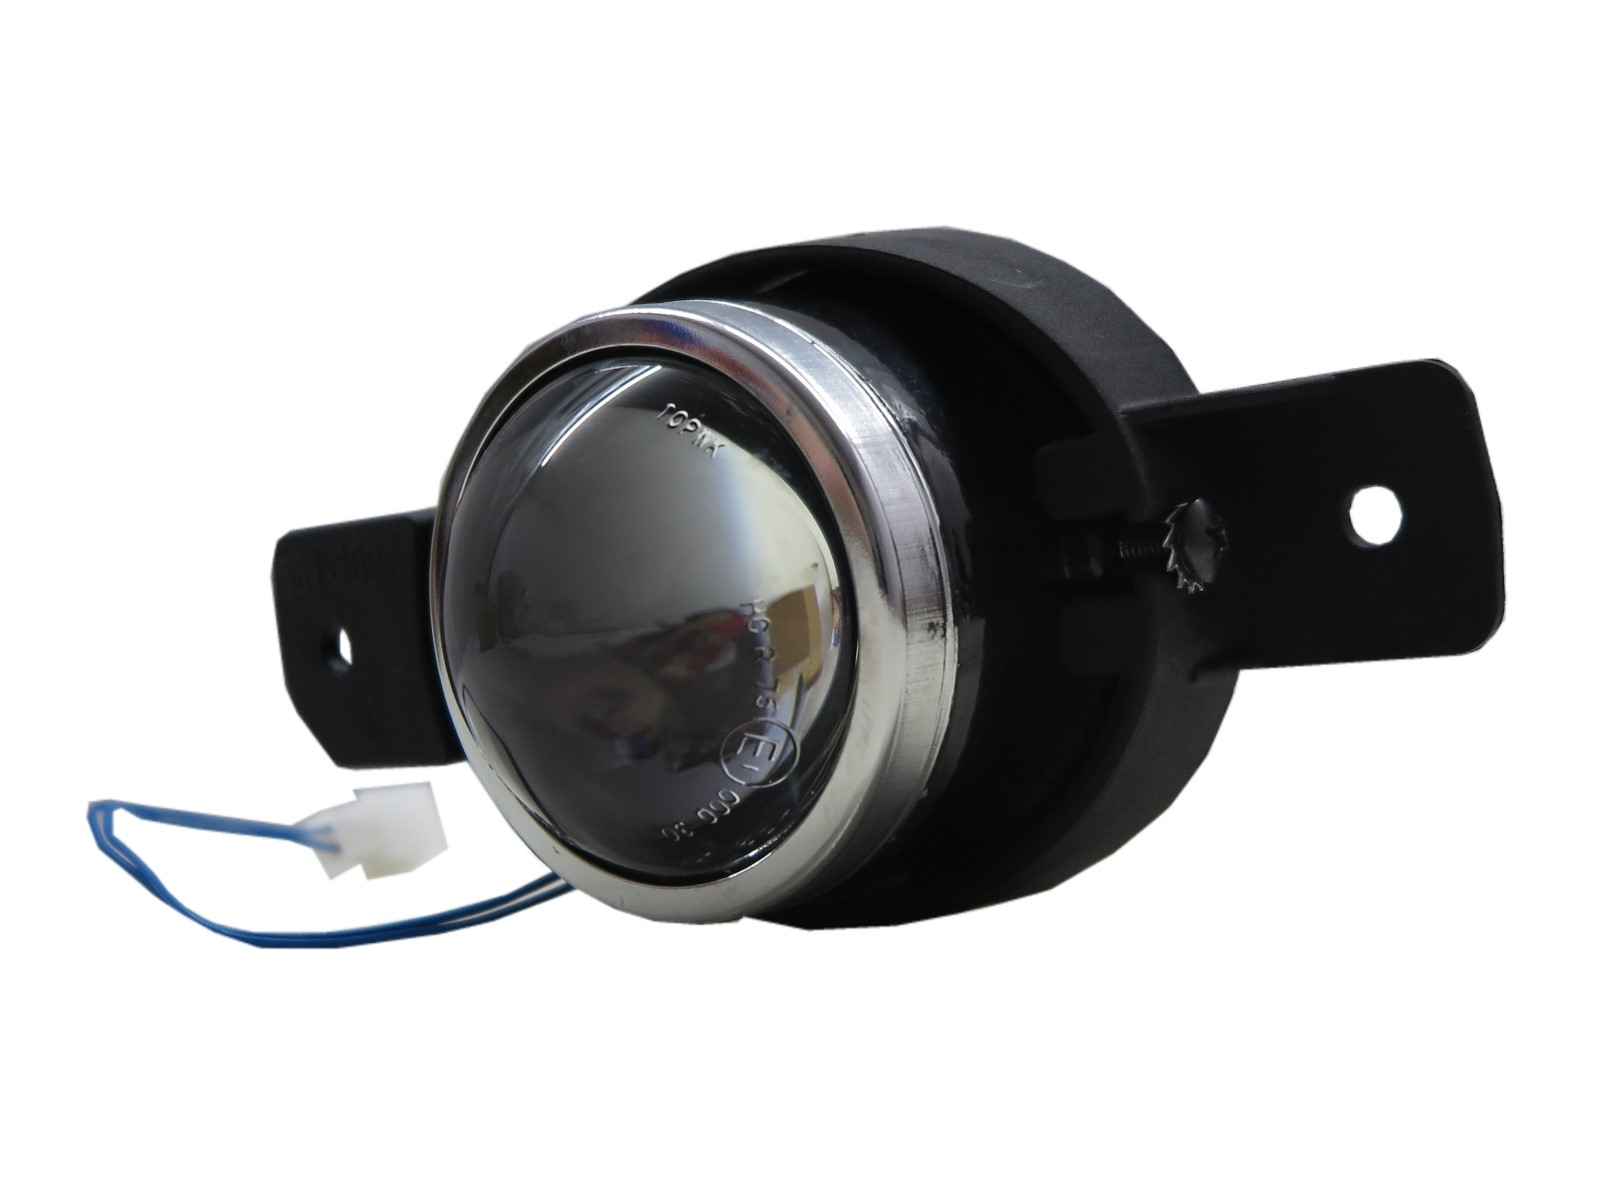 thumbnail 2 - Thalia MK2 08-13 Pre-Facelift 4D Projector Dual Beam Fog Light Black for RENAULT